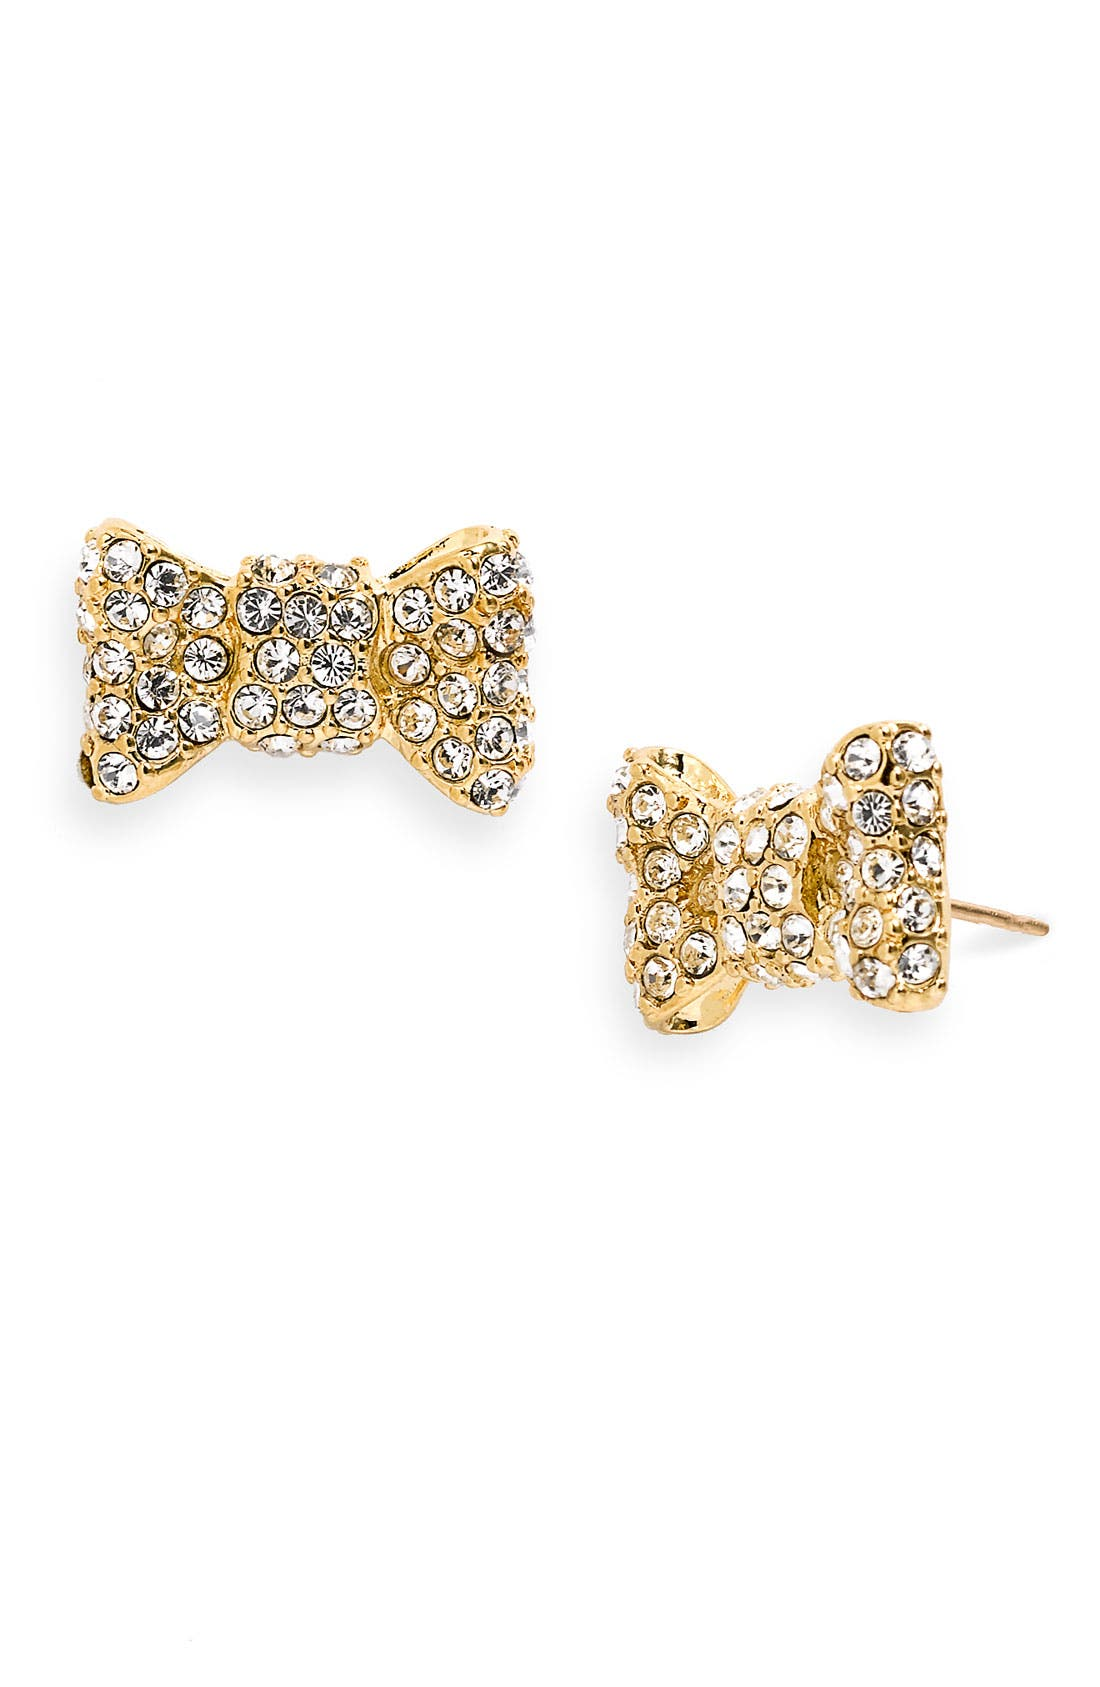 Main Image - kate spade new york 'all wrapped up' pavé bow stud earrings